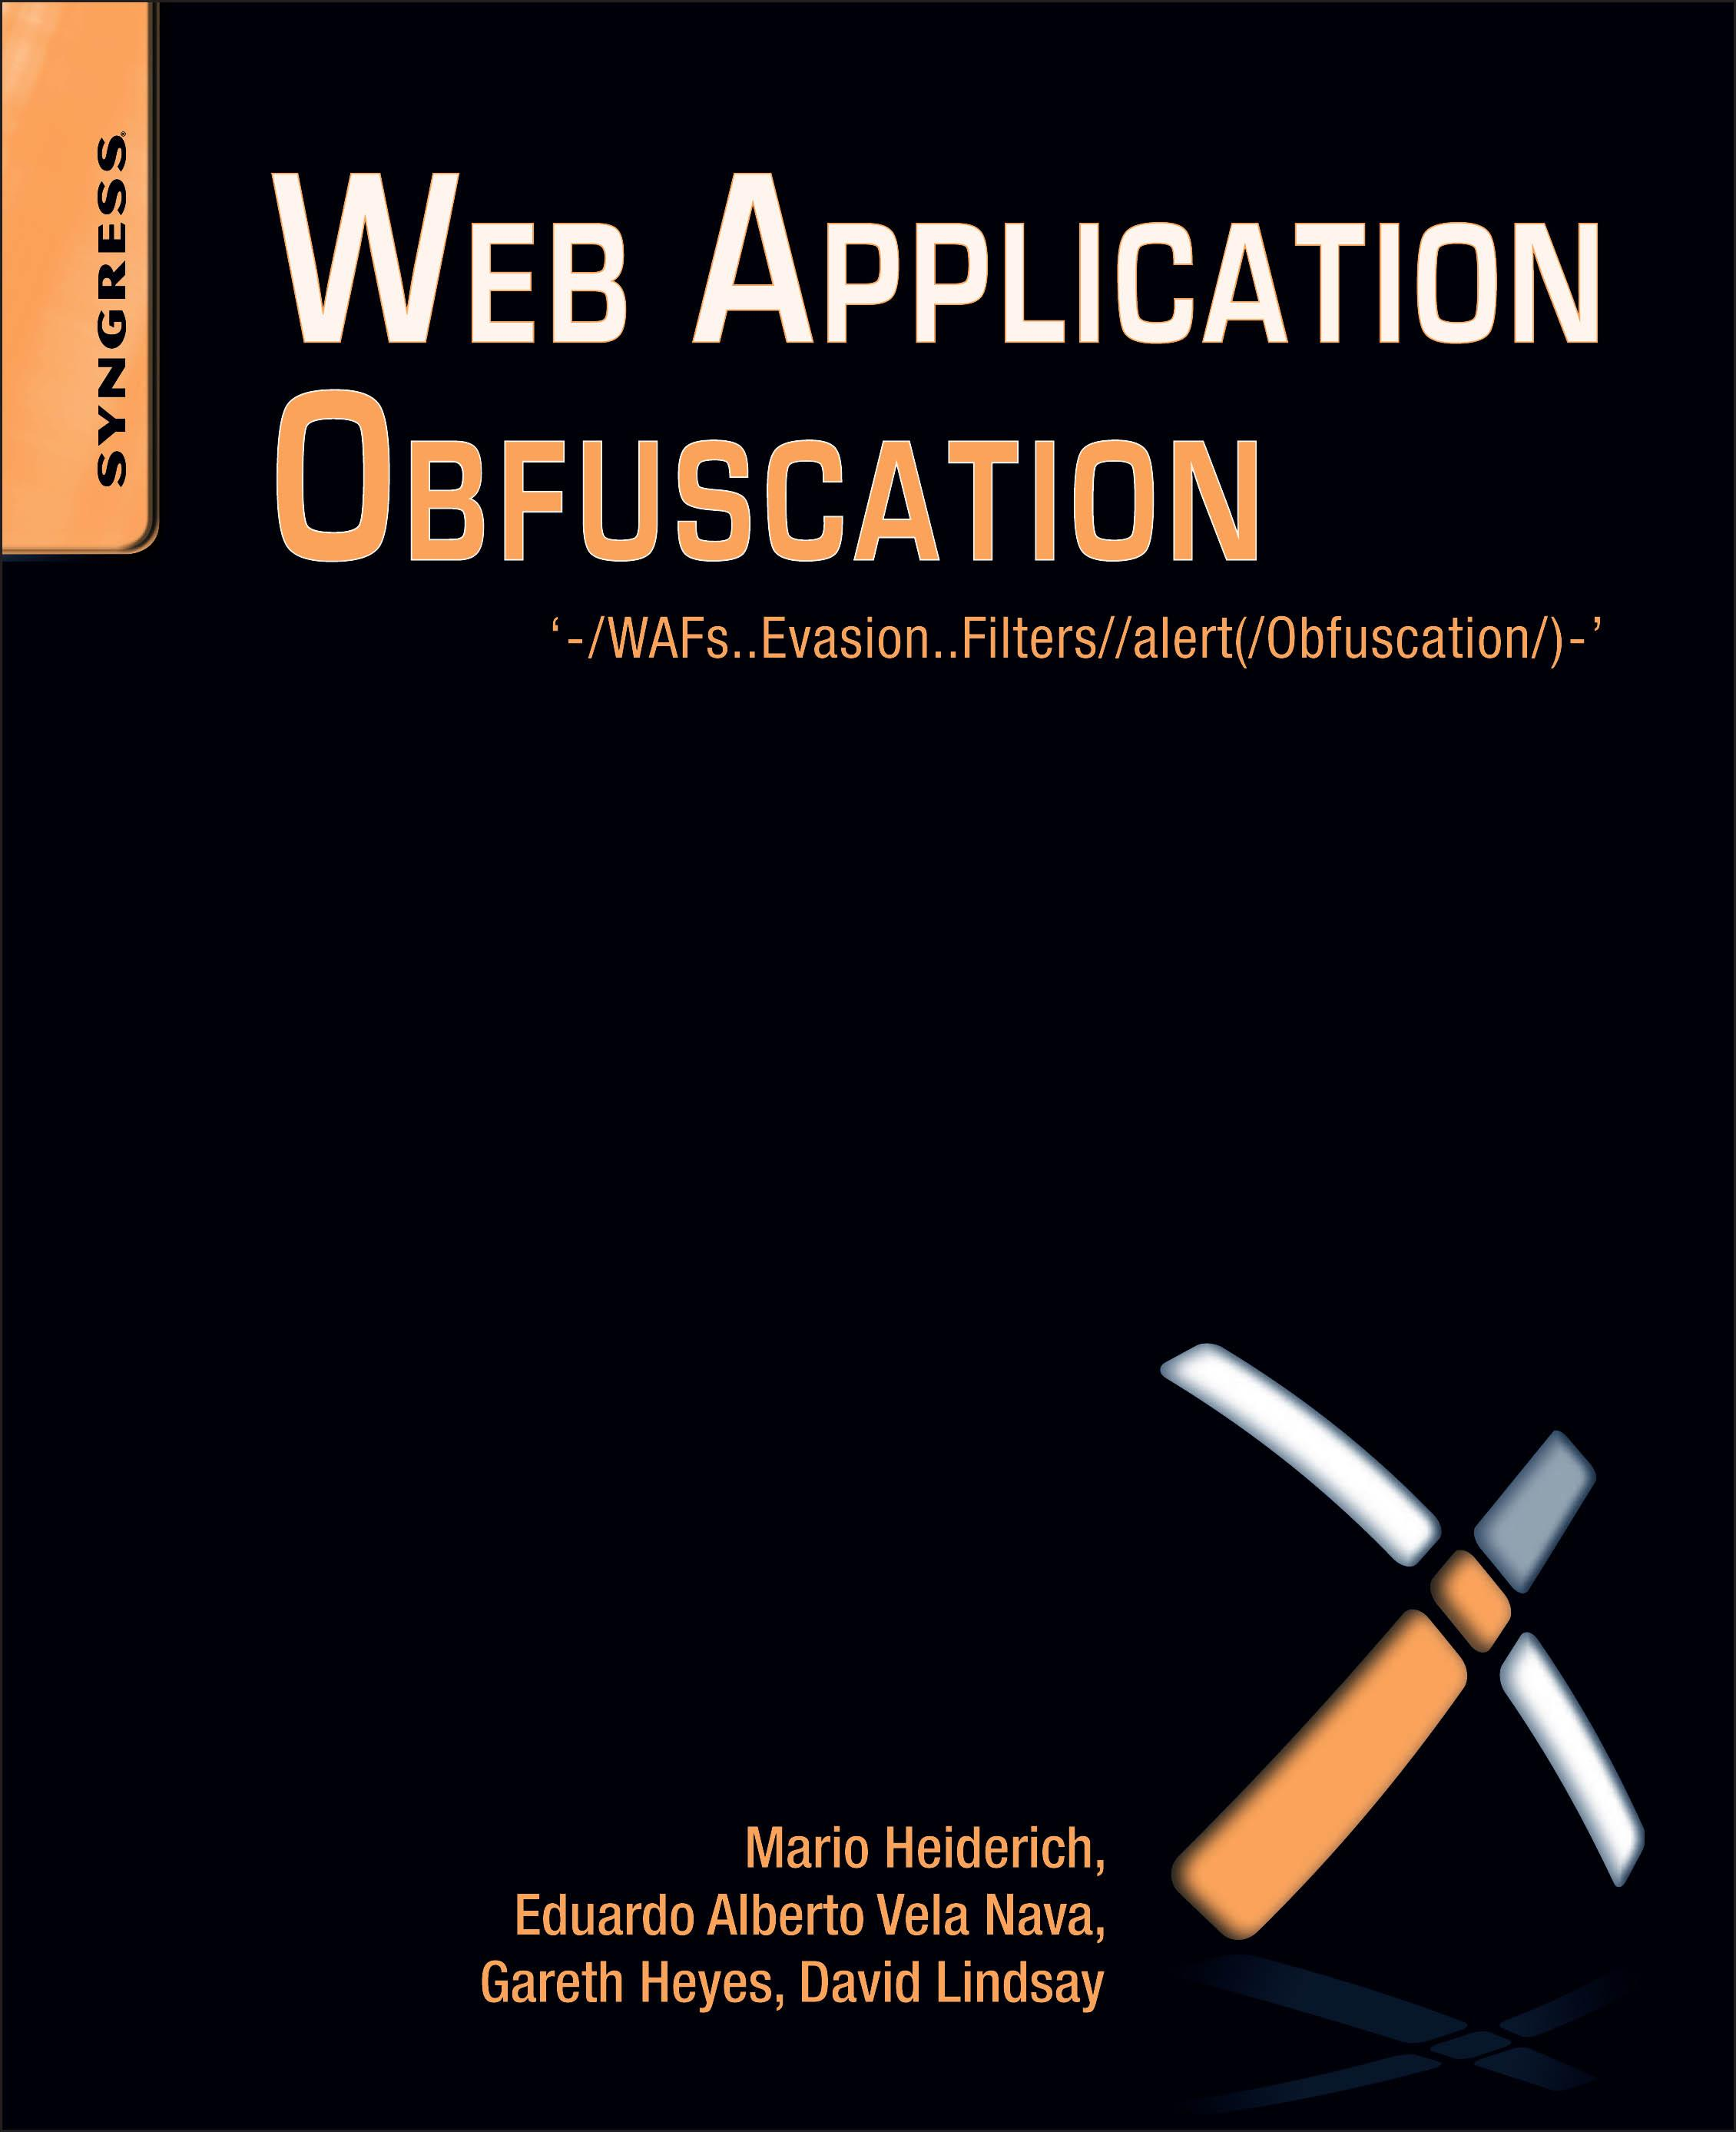 web app obfuscation